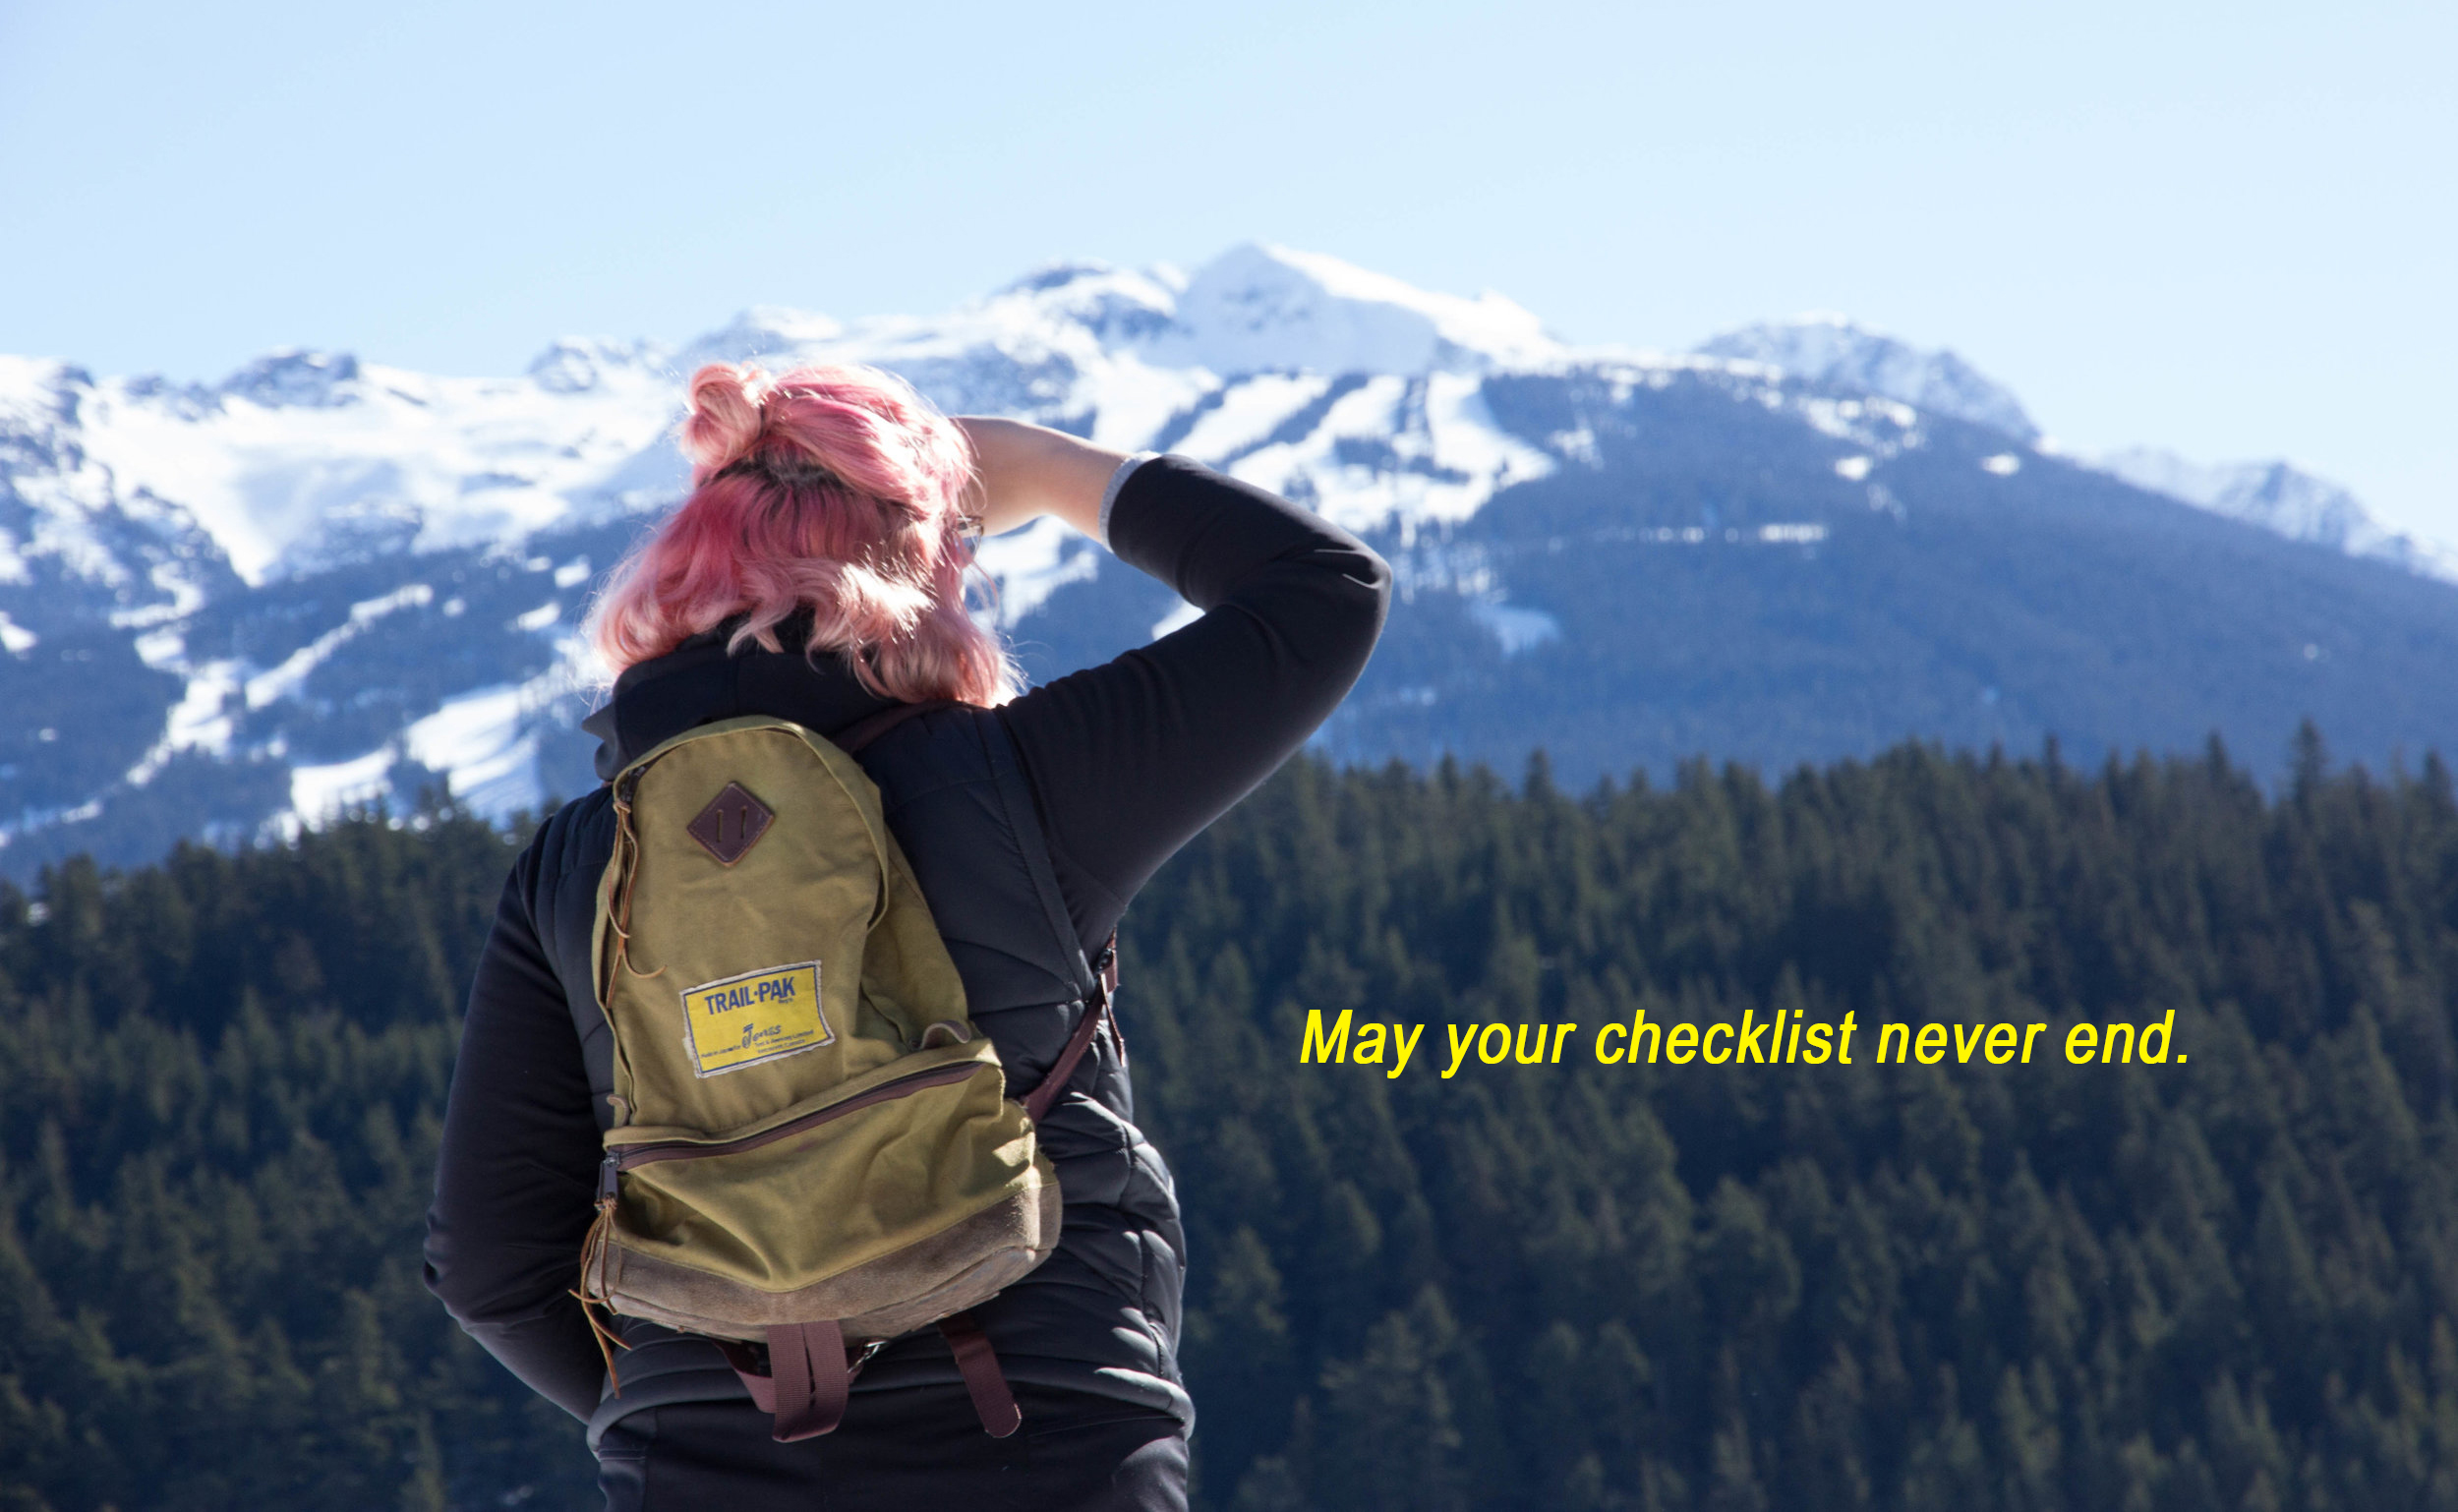 may your checklist never end, mountains.jpg